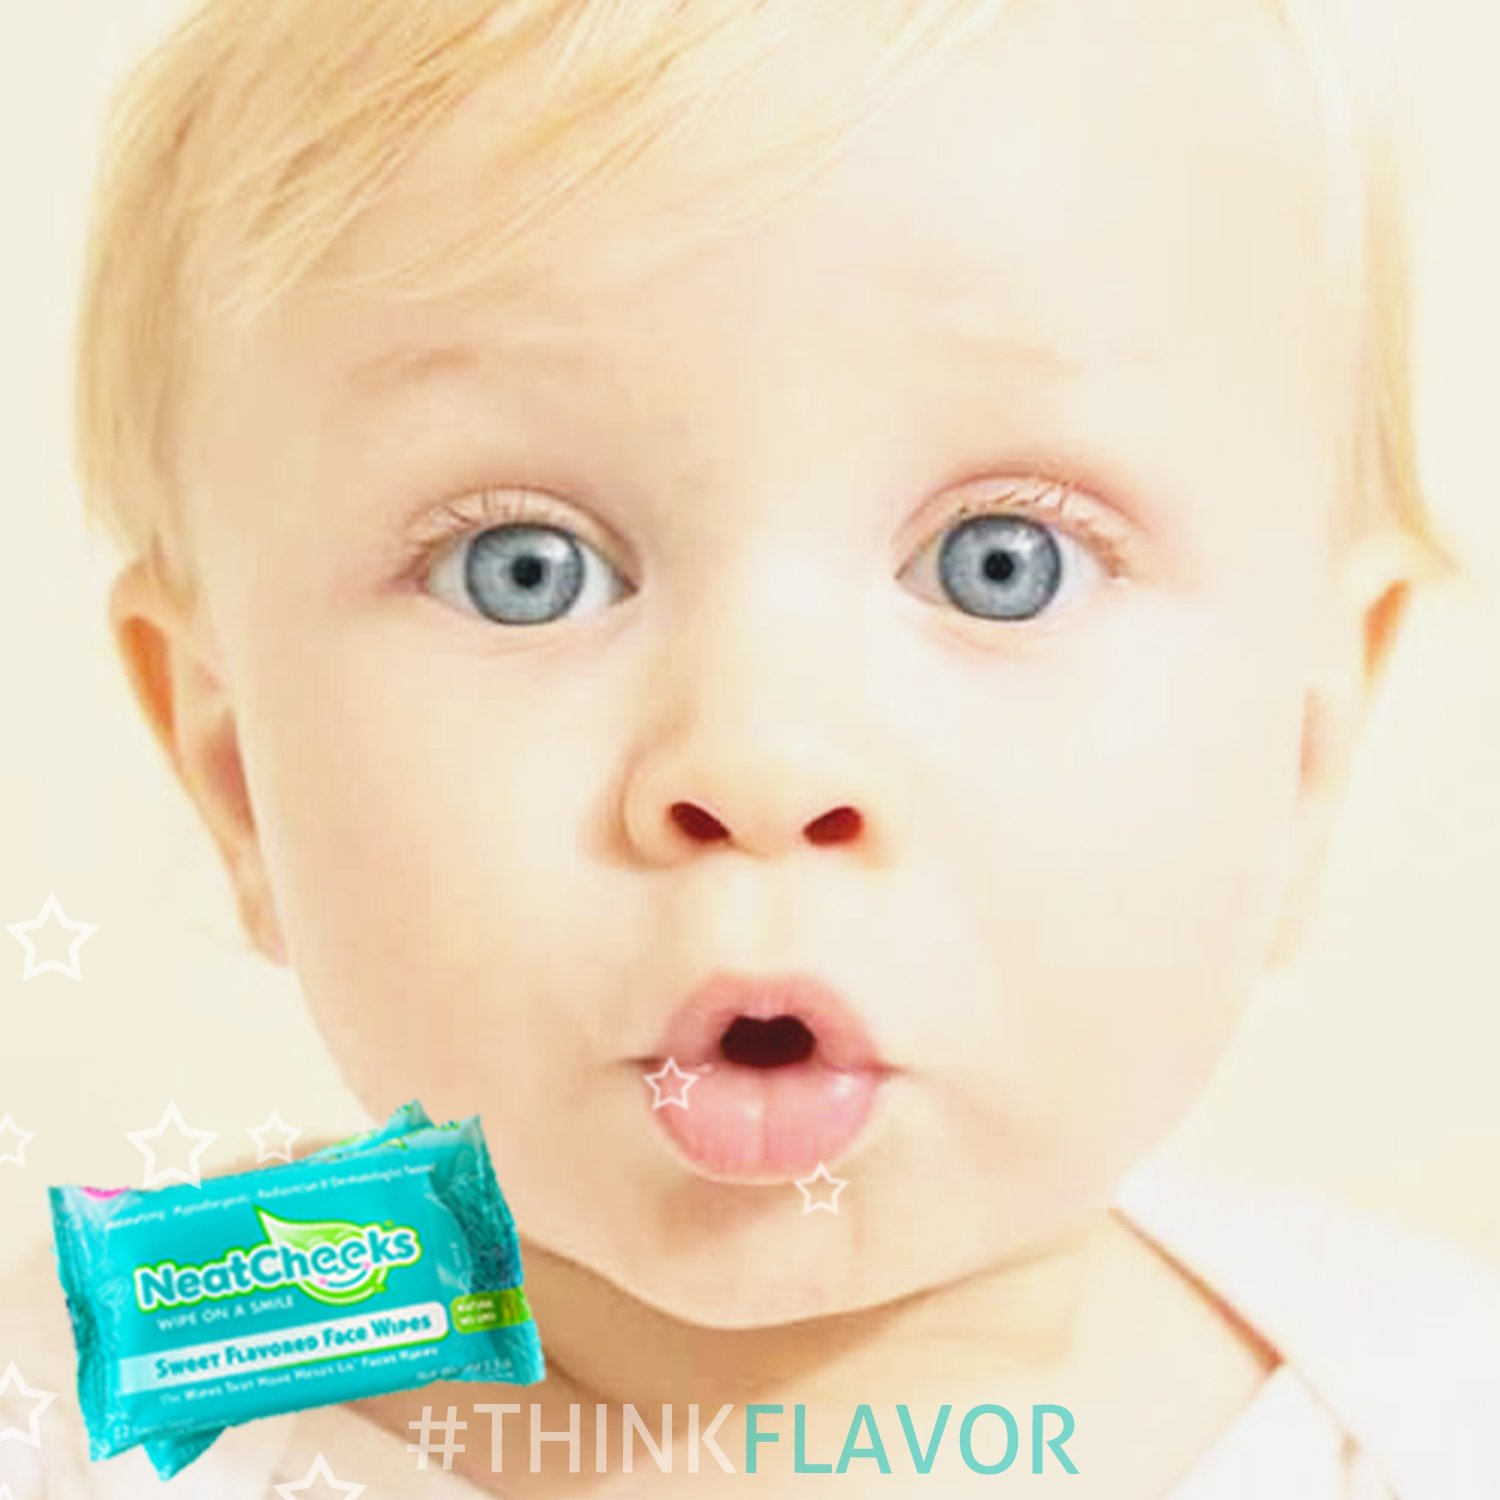 The Original NeatCheeks Natural Flavored Baby Face Wipes for Sensitive Skin - As seen on SHARK TANK! Case of 6 Travel Packs...12 Wipes per Pack